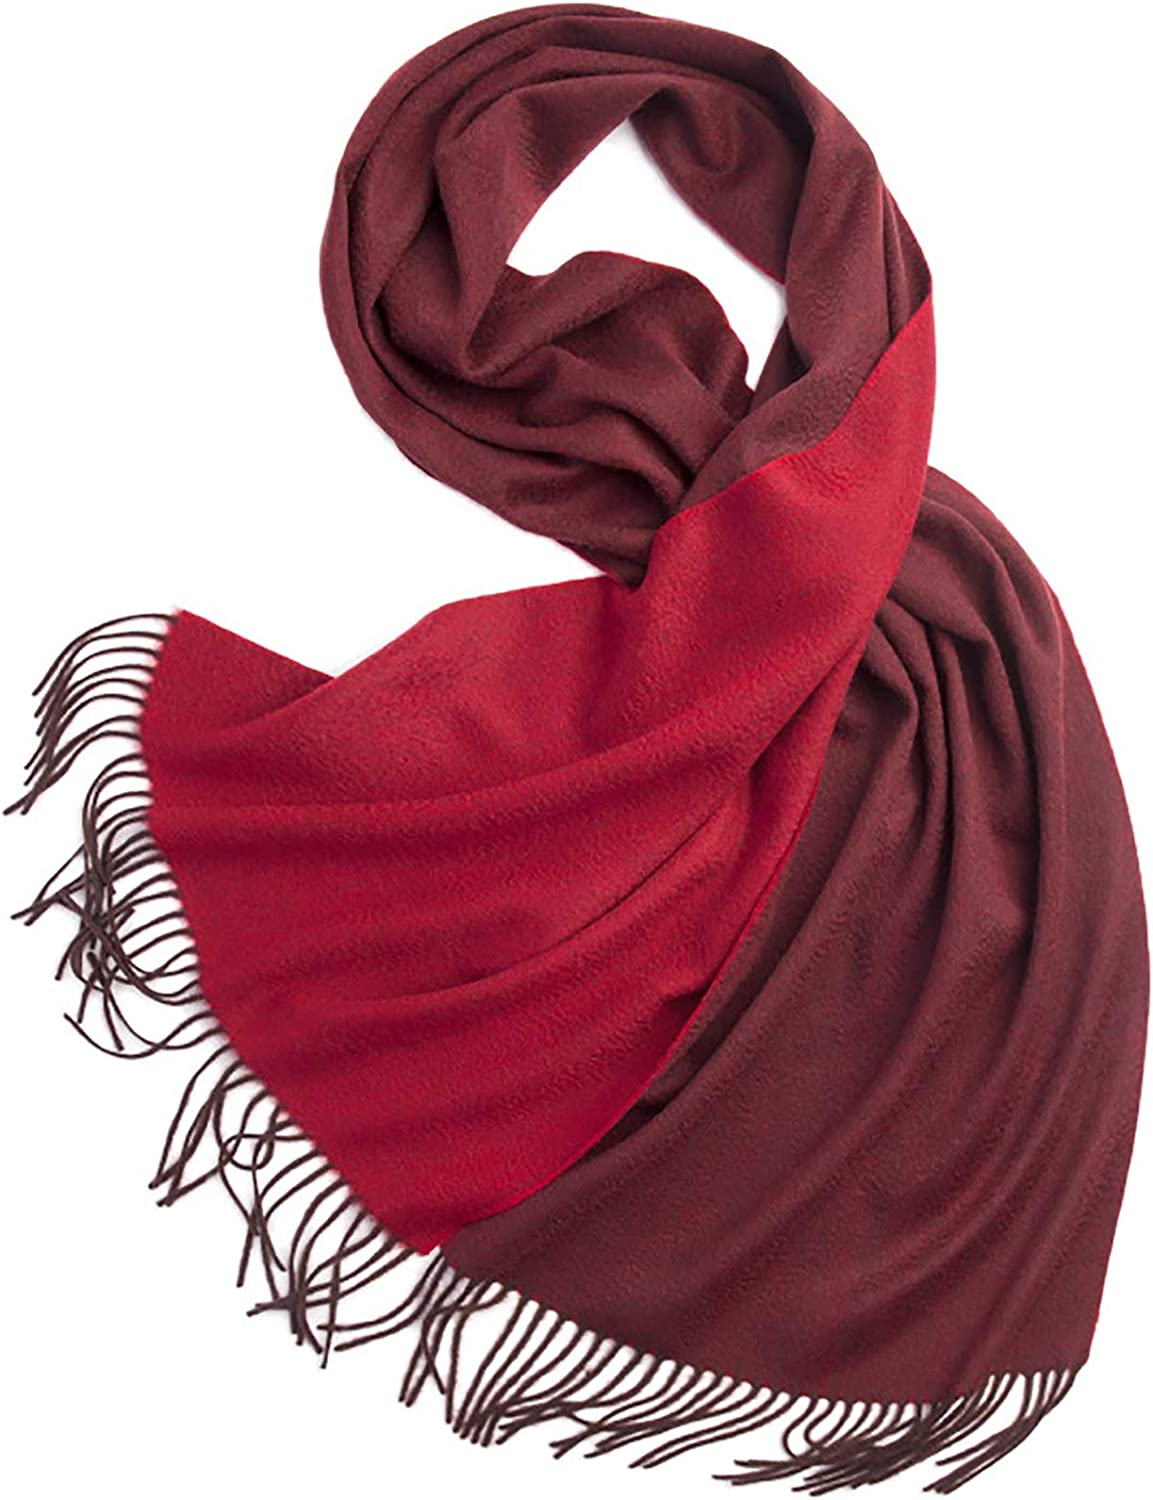 LIUMANG Ladies Print Scarf Ripple Solid Color Double-Sided Winter Scarf Ladies Cold-Proof Fashion Bib Shawl Shawl Style Poncho (Color : Red, Size : 200x40cm)